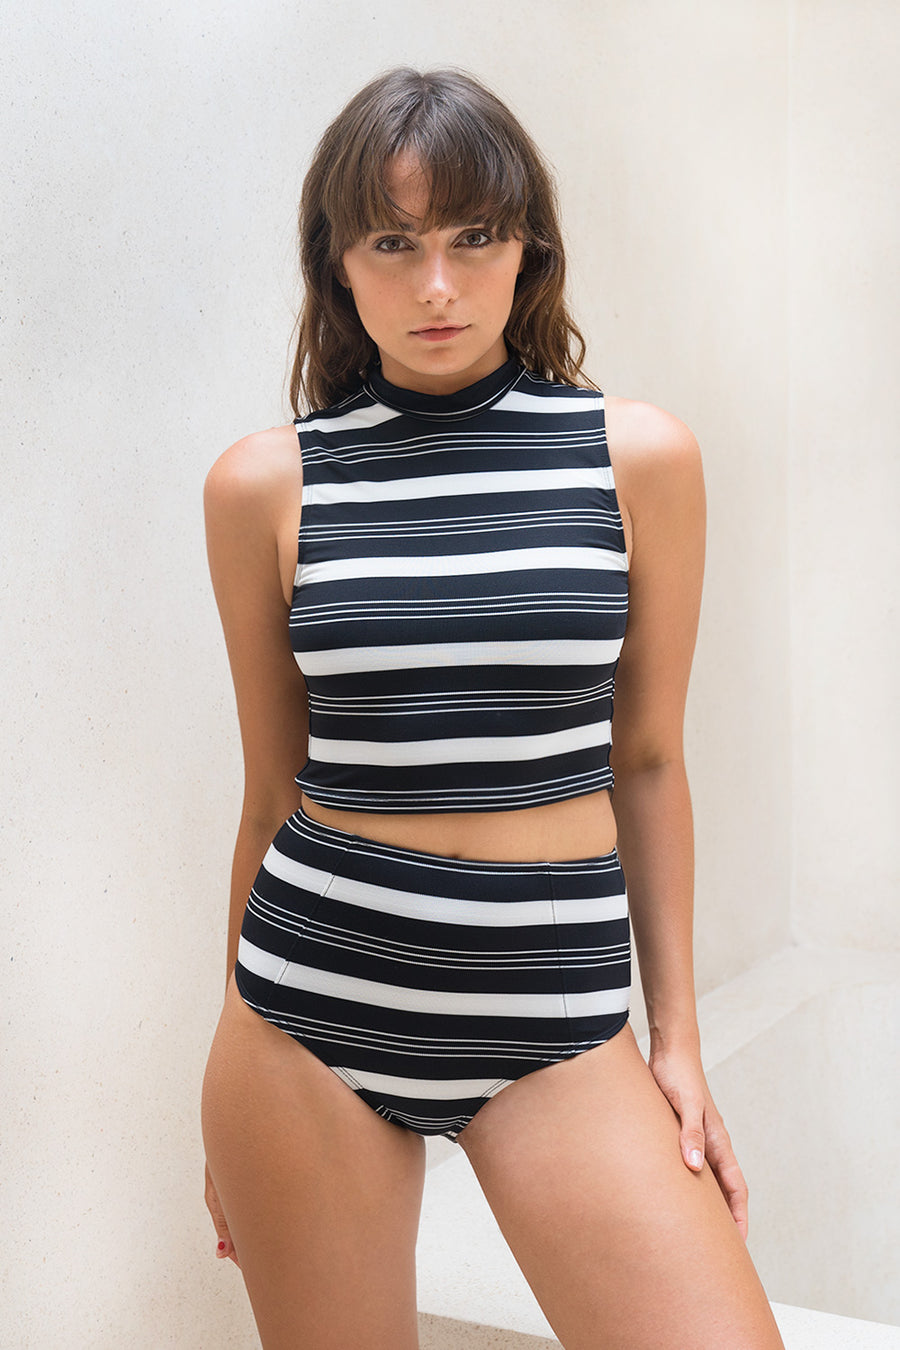 Santiago High Bottom Black + White Stripe